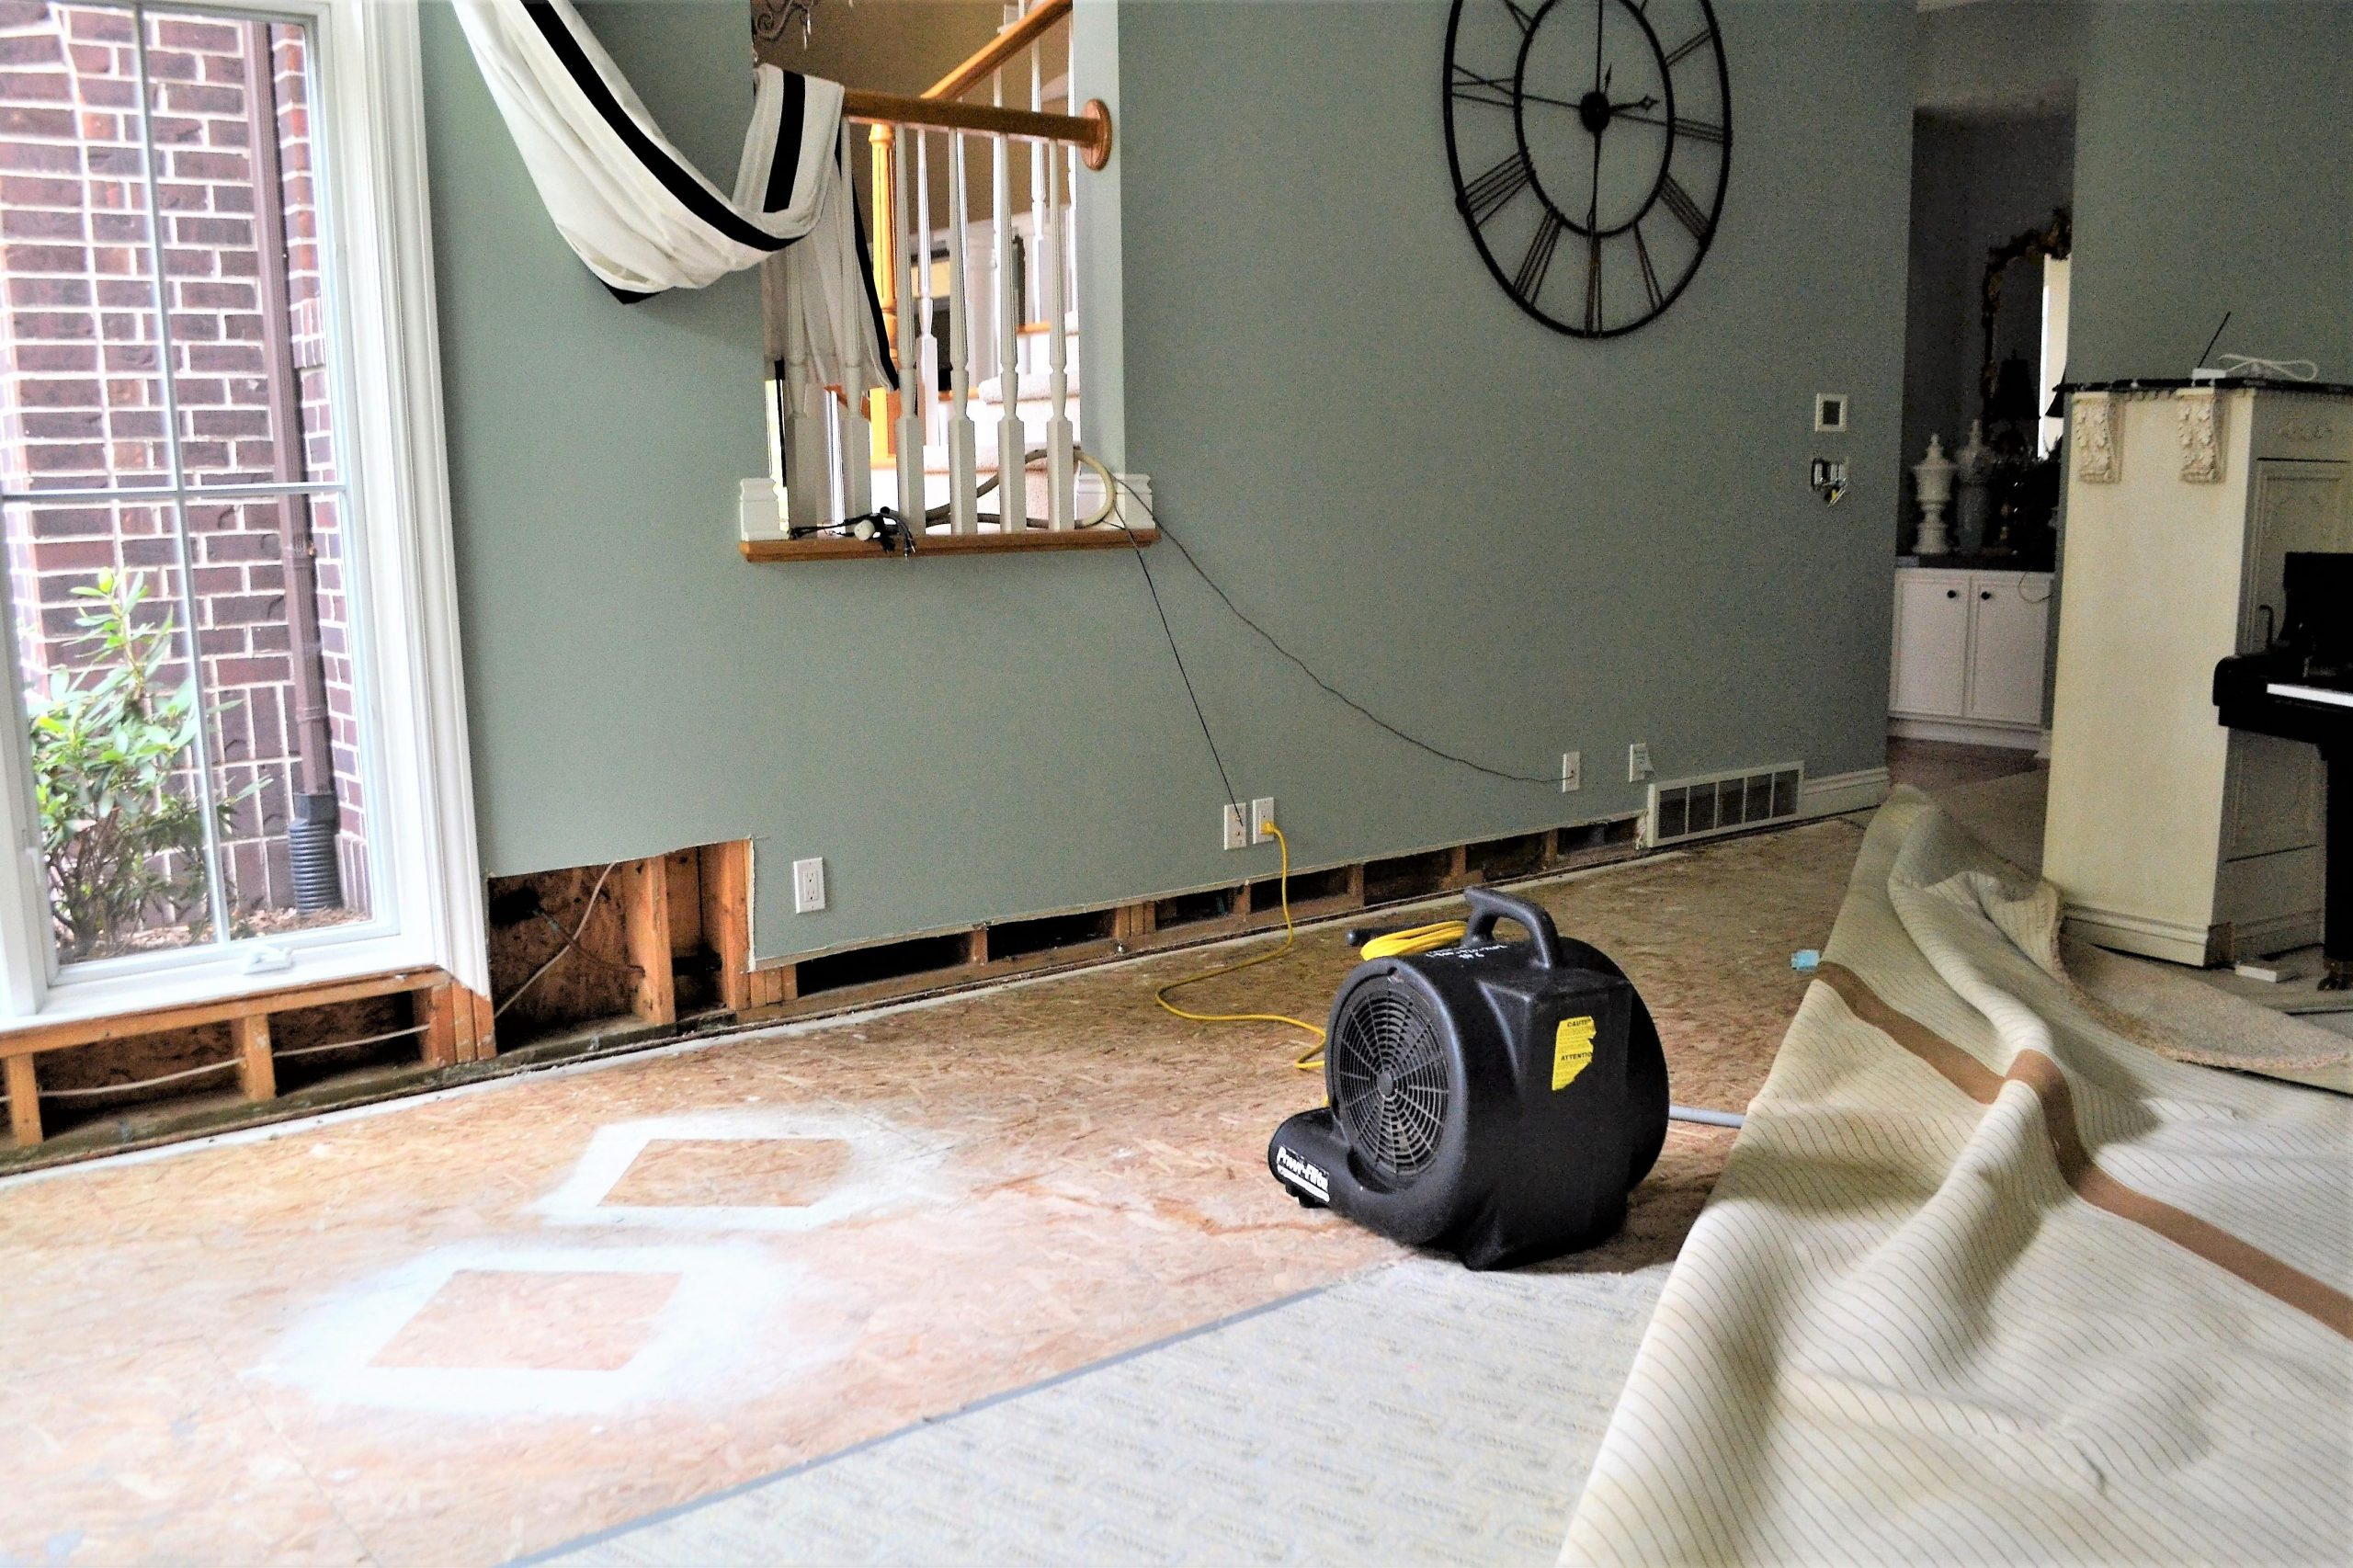 South Florida Water Mold And Fire Restoration JASD Inc scaled